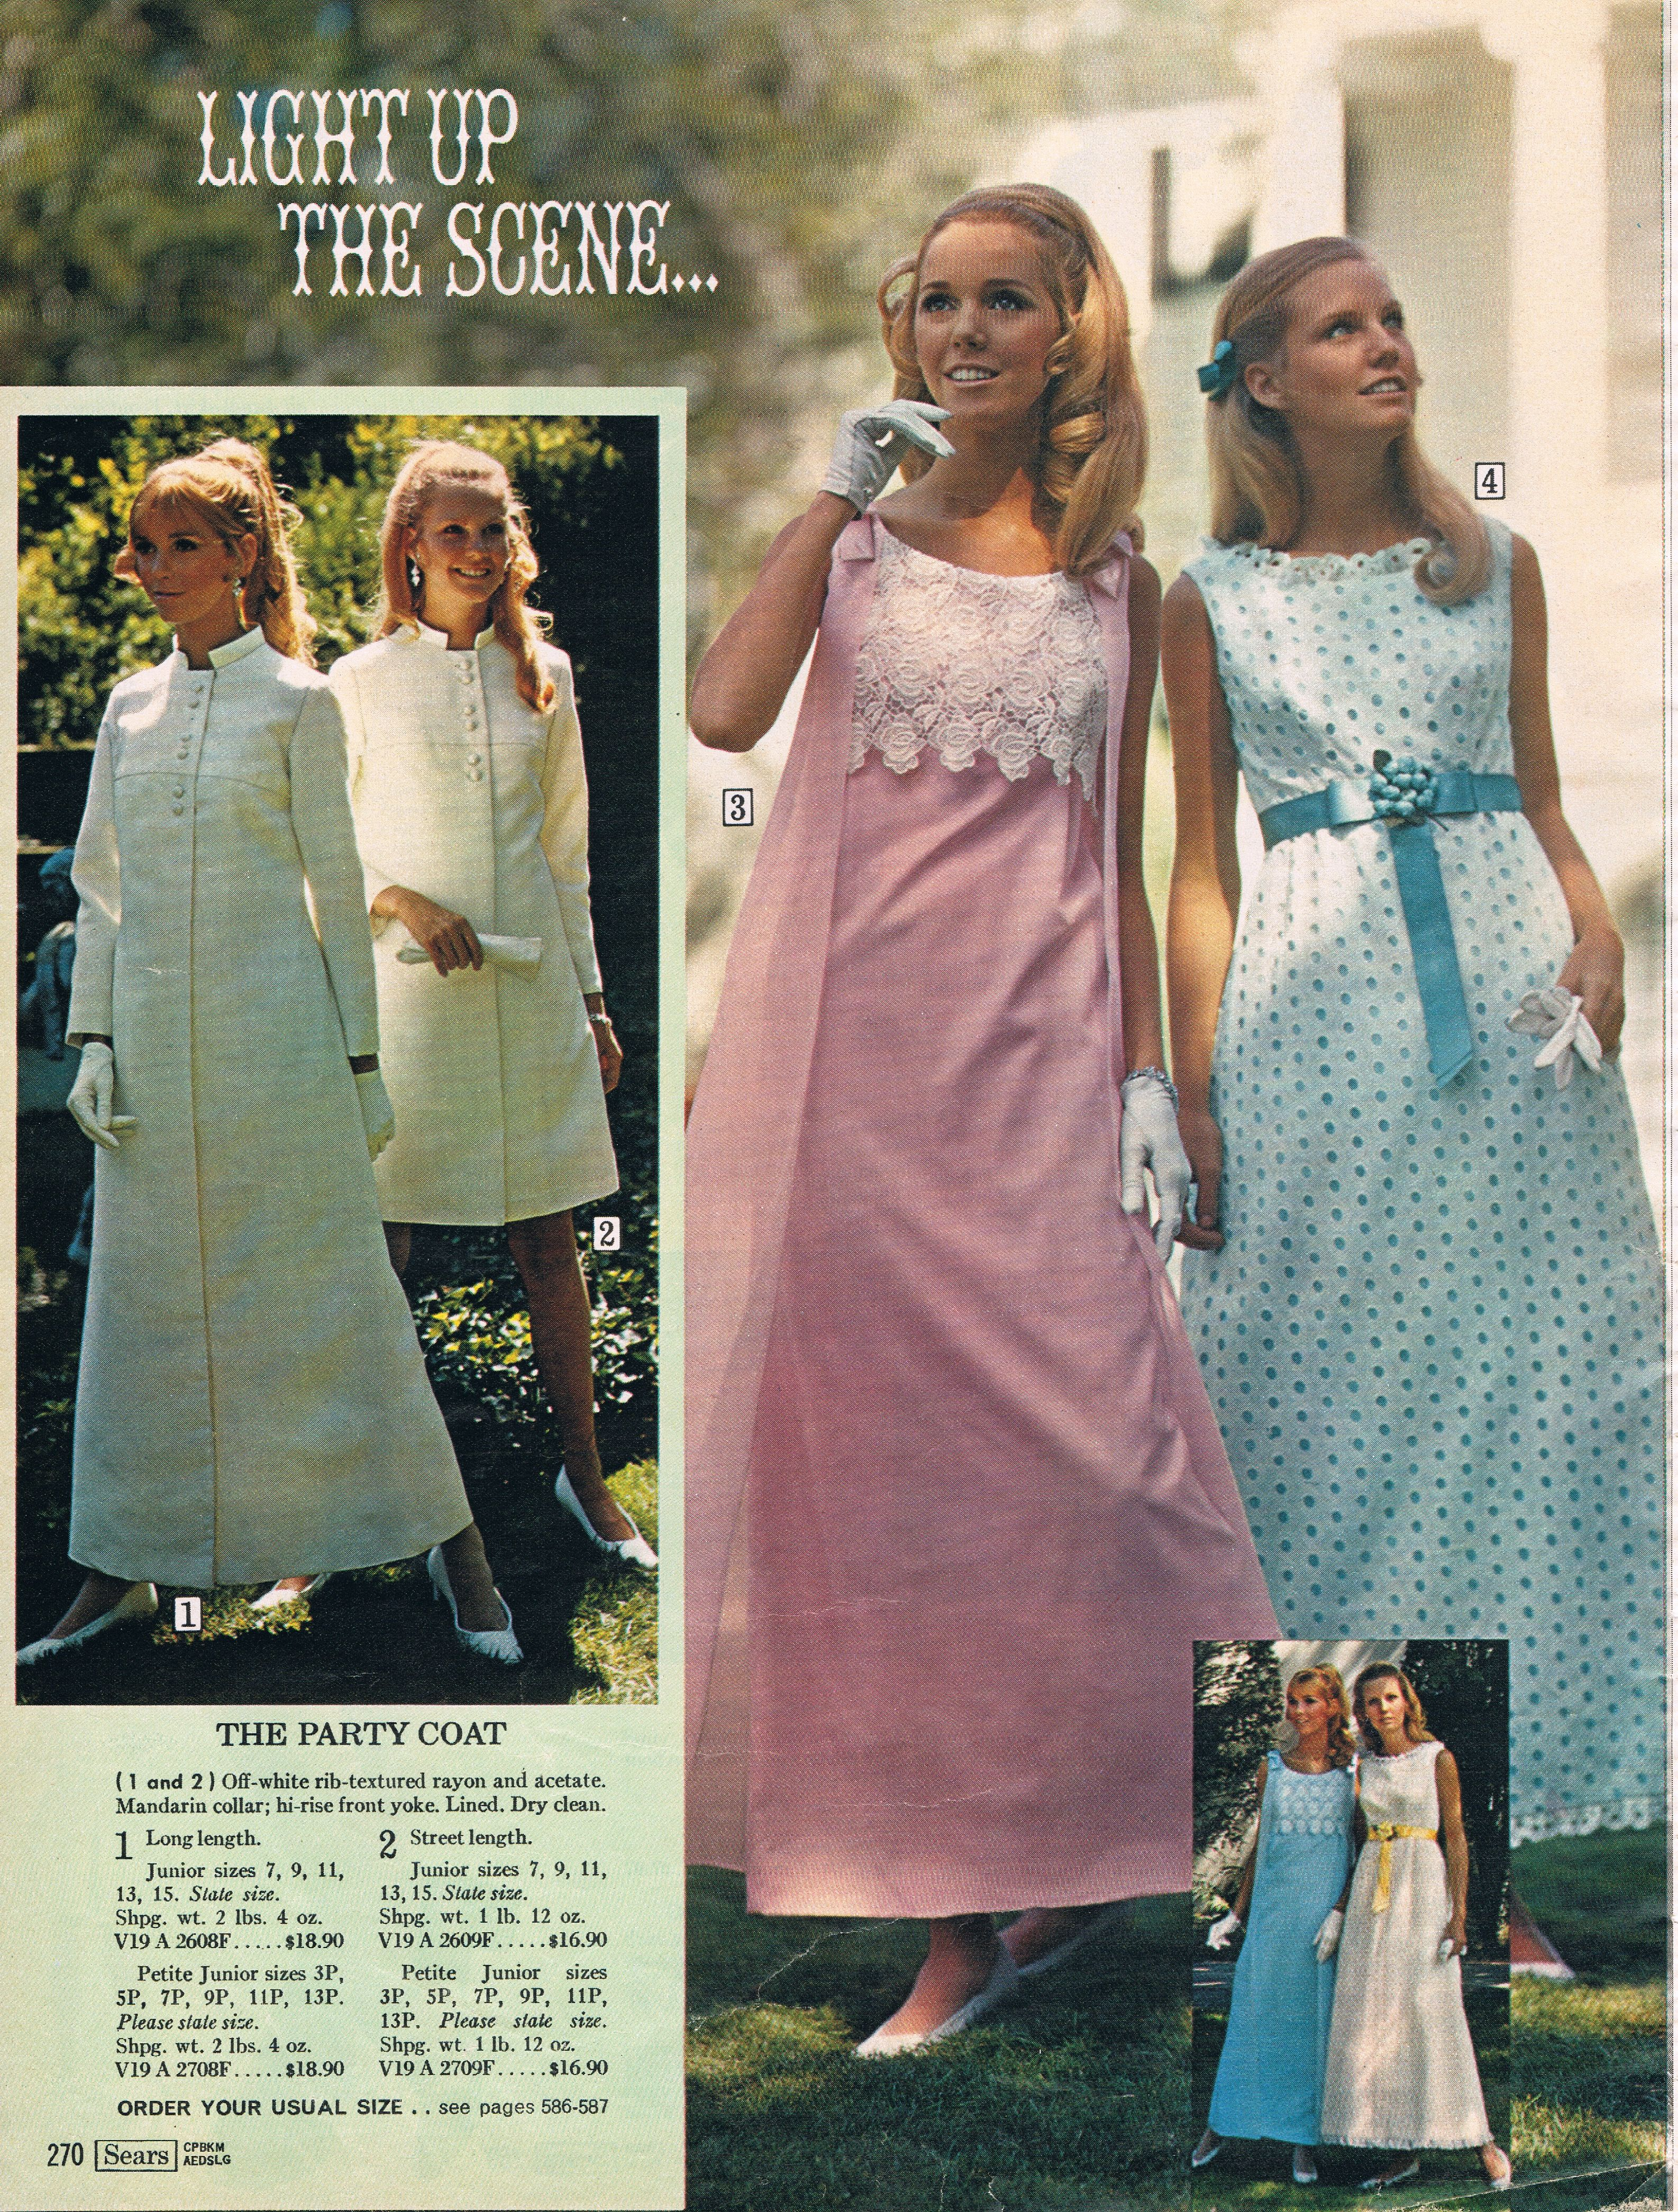 Sears catalog 60s vintage bridal and bridesmaid dresses 1960 sears catalog 60s vintage bridalbridesmaid dresses ombrellifo Gallery